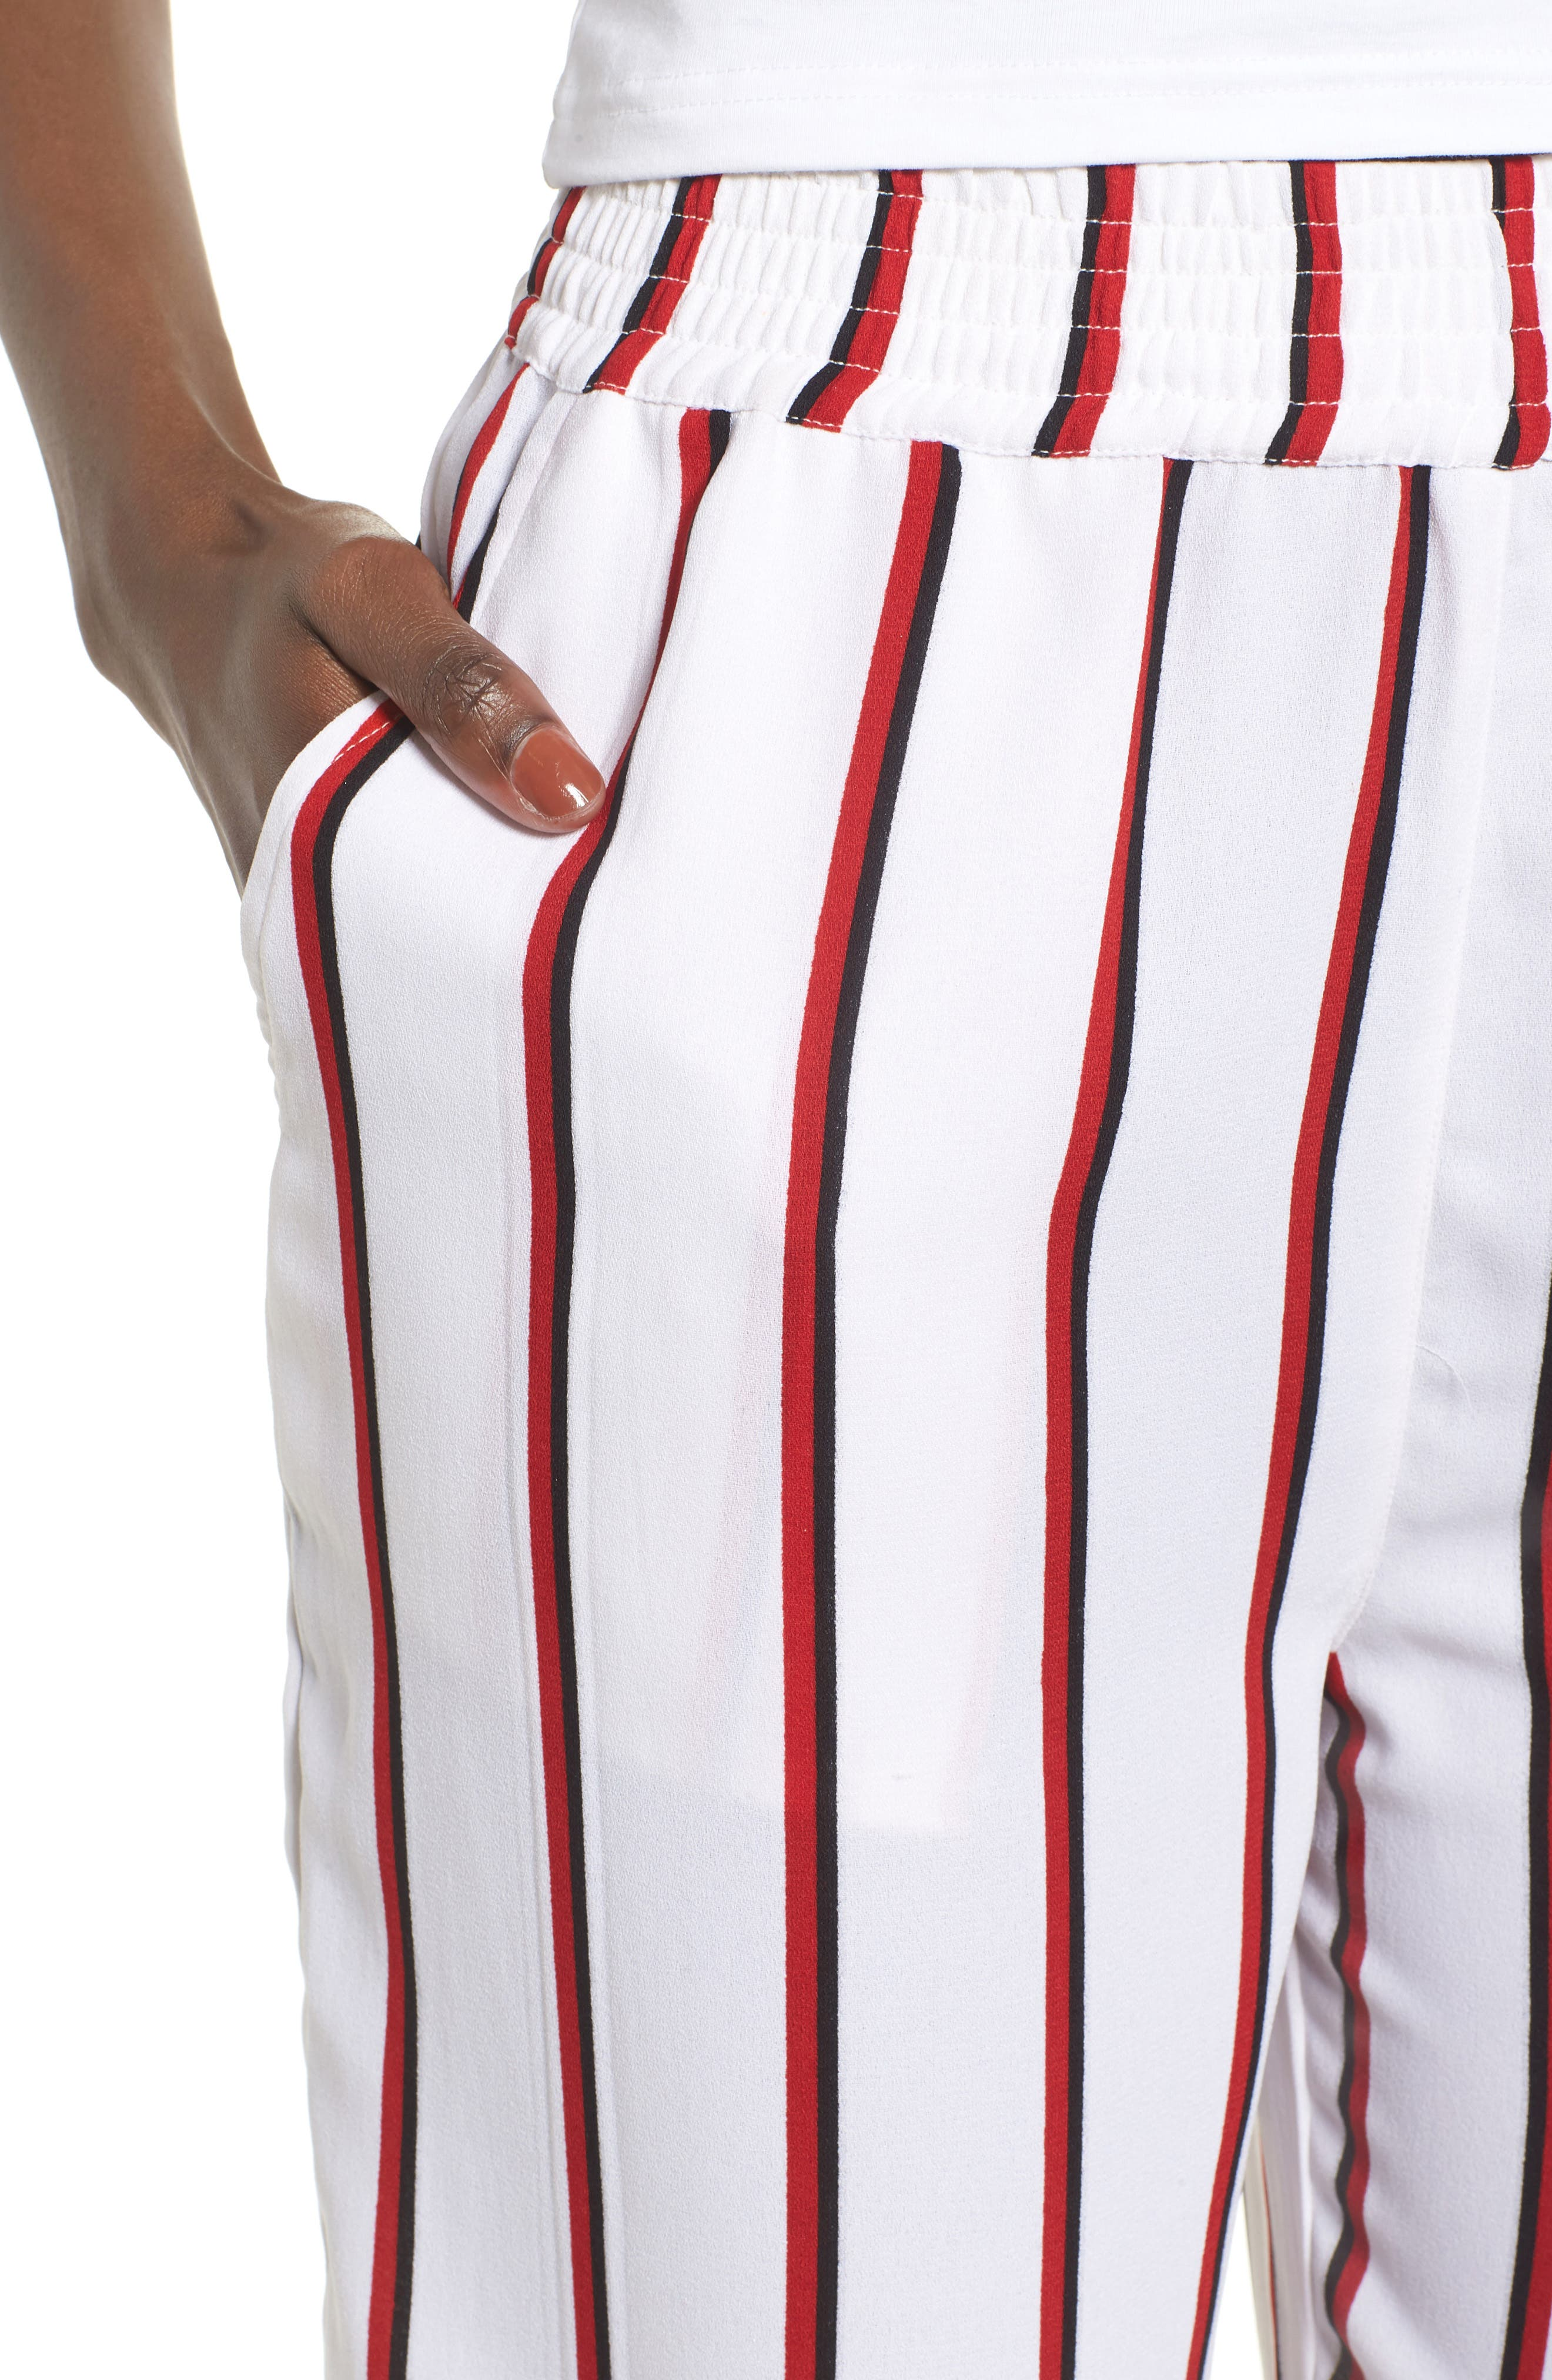 Counting Moons Stripe Culottes,                             Alternate thumbnail 4, color,                             Chili Red